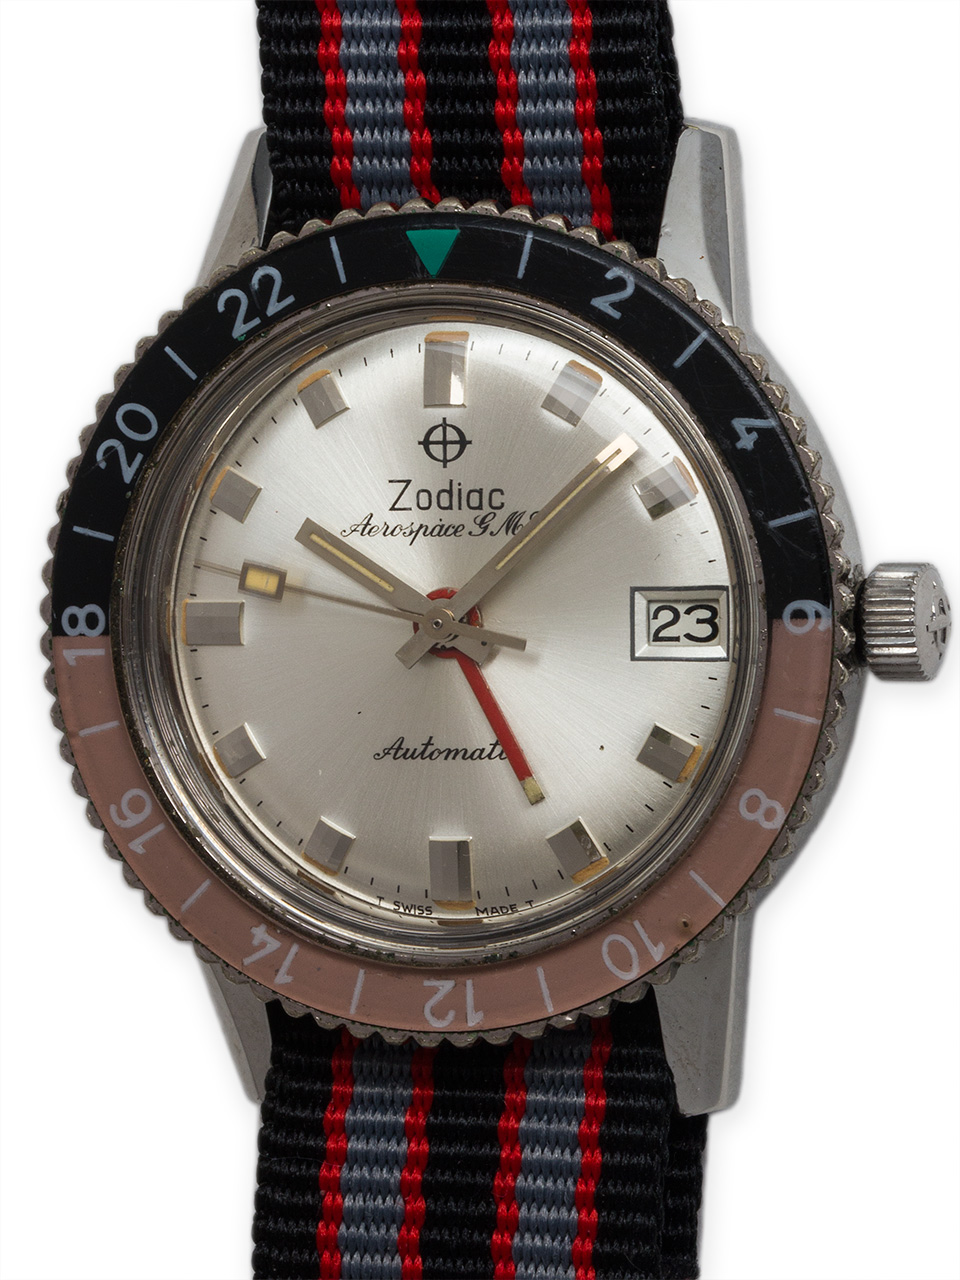 Zodiac SS Aerospace GMT circa 1960's